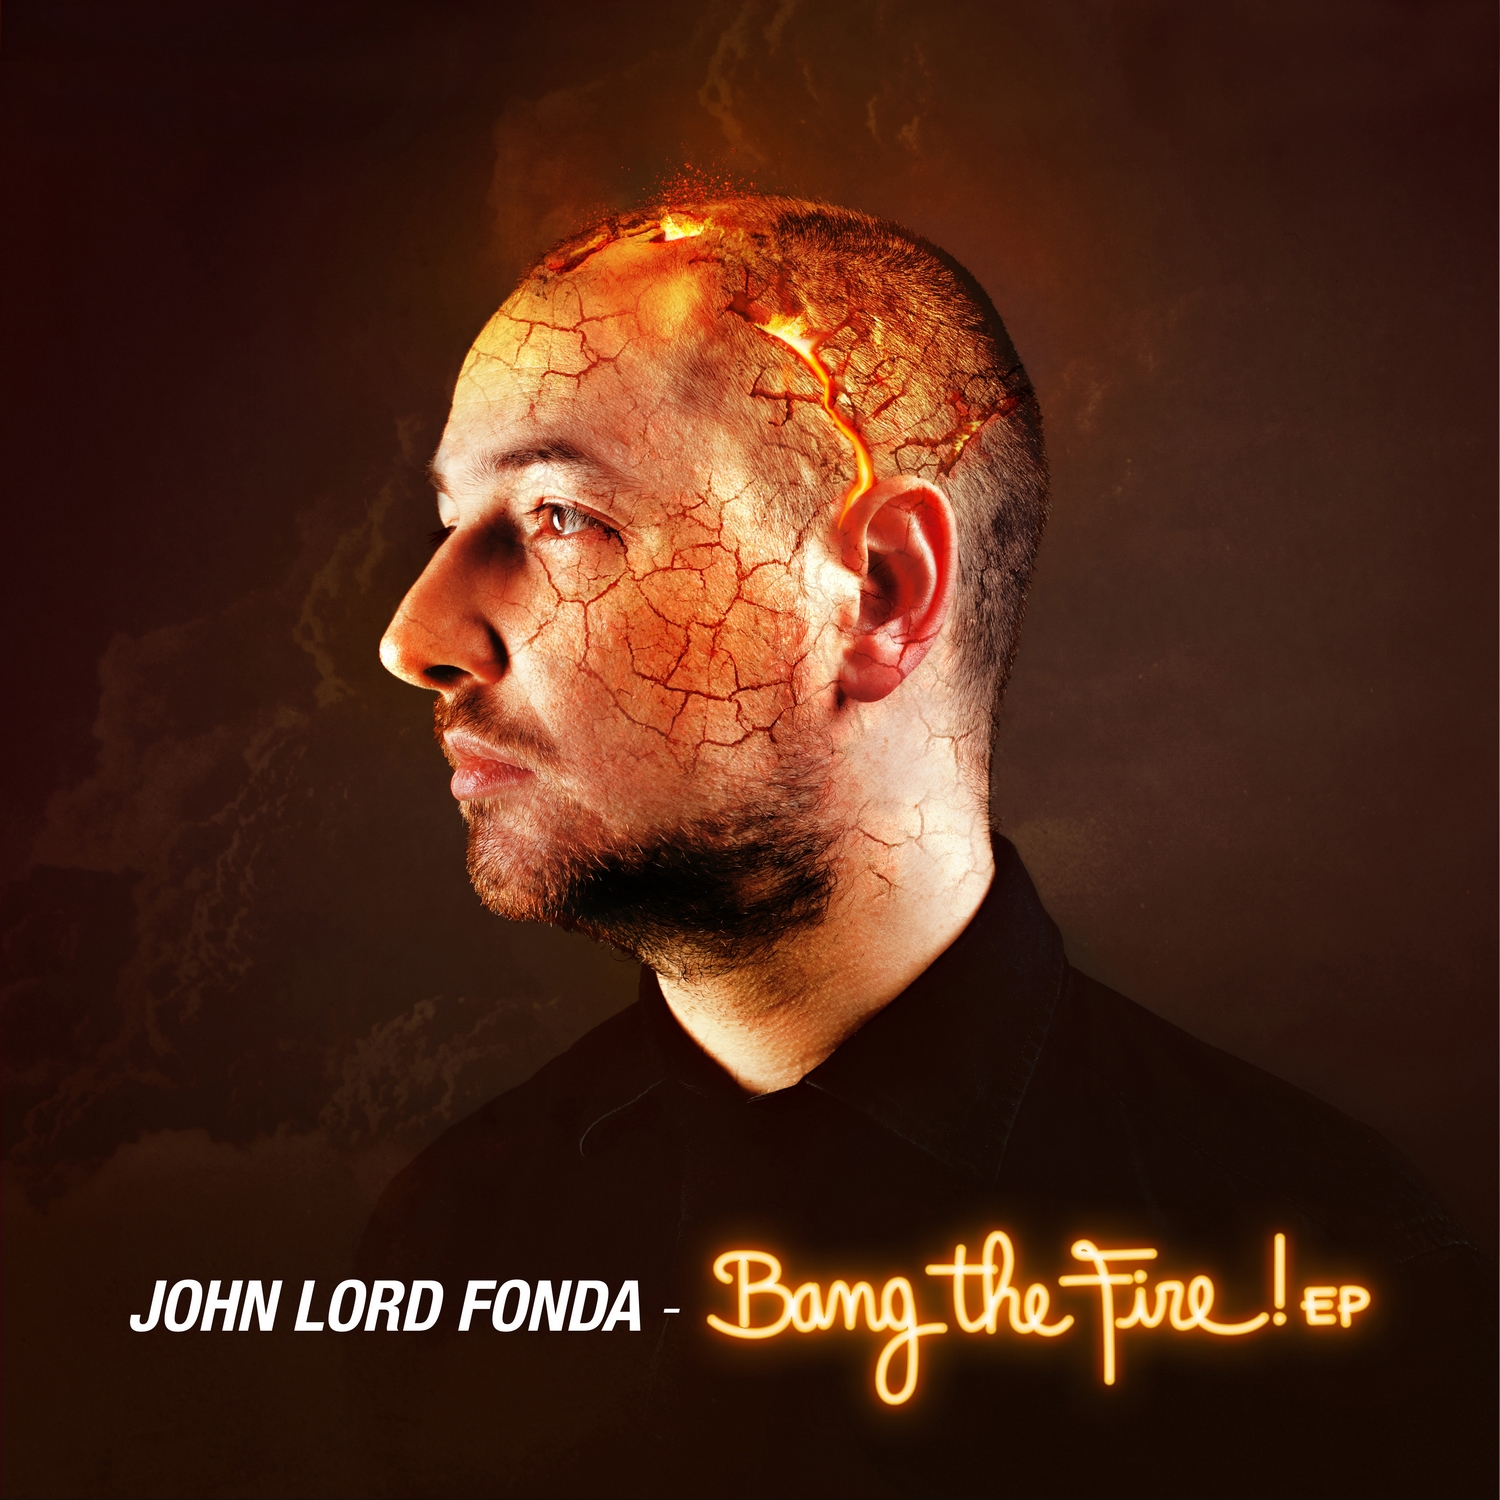 John Lord Fonda - Bang the fire EP